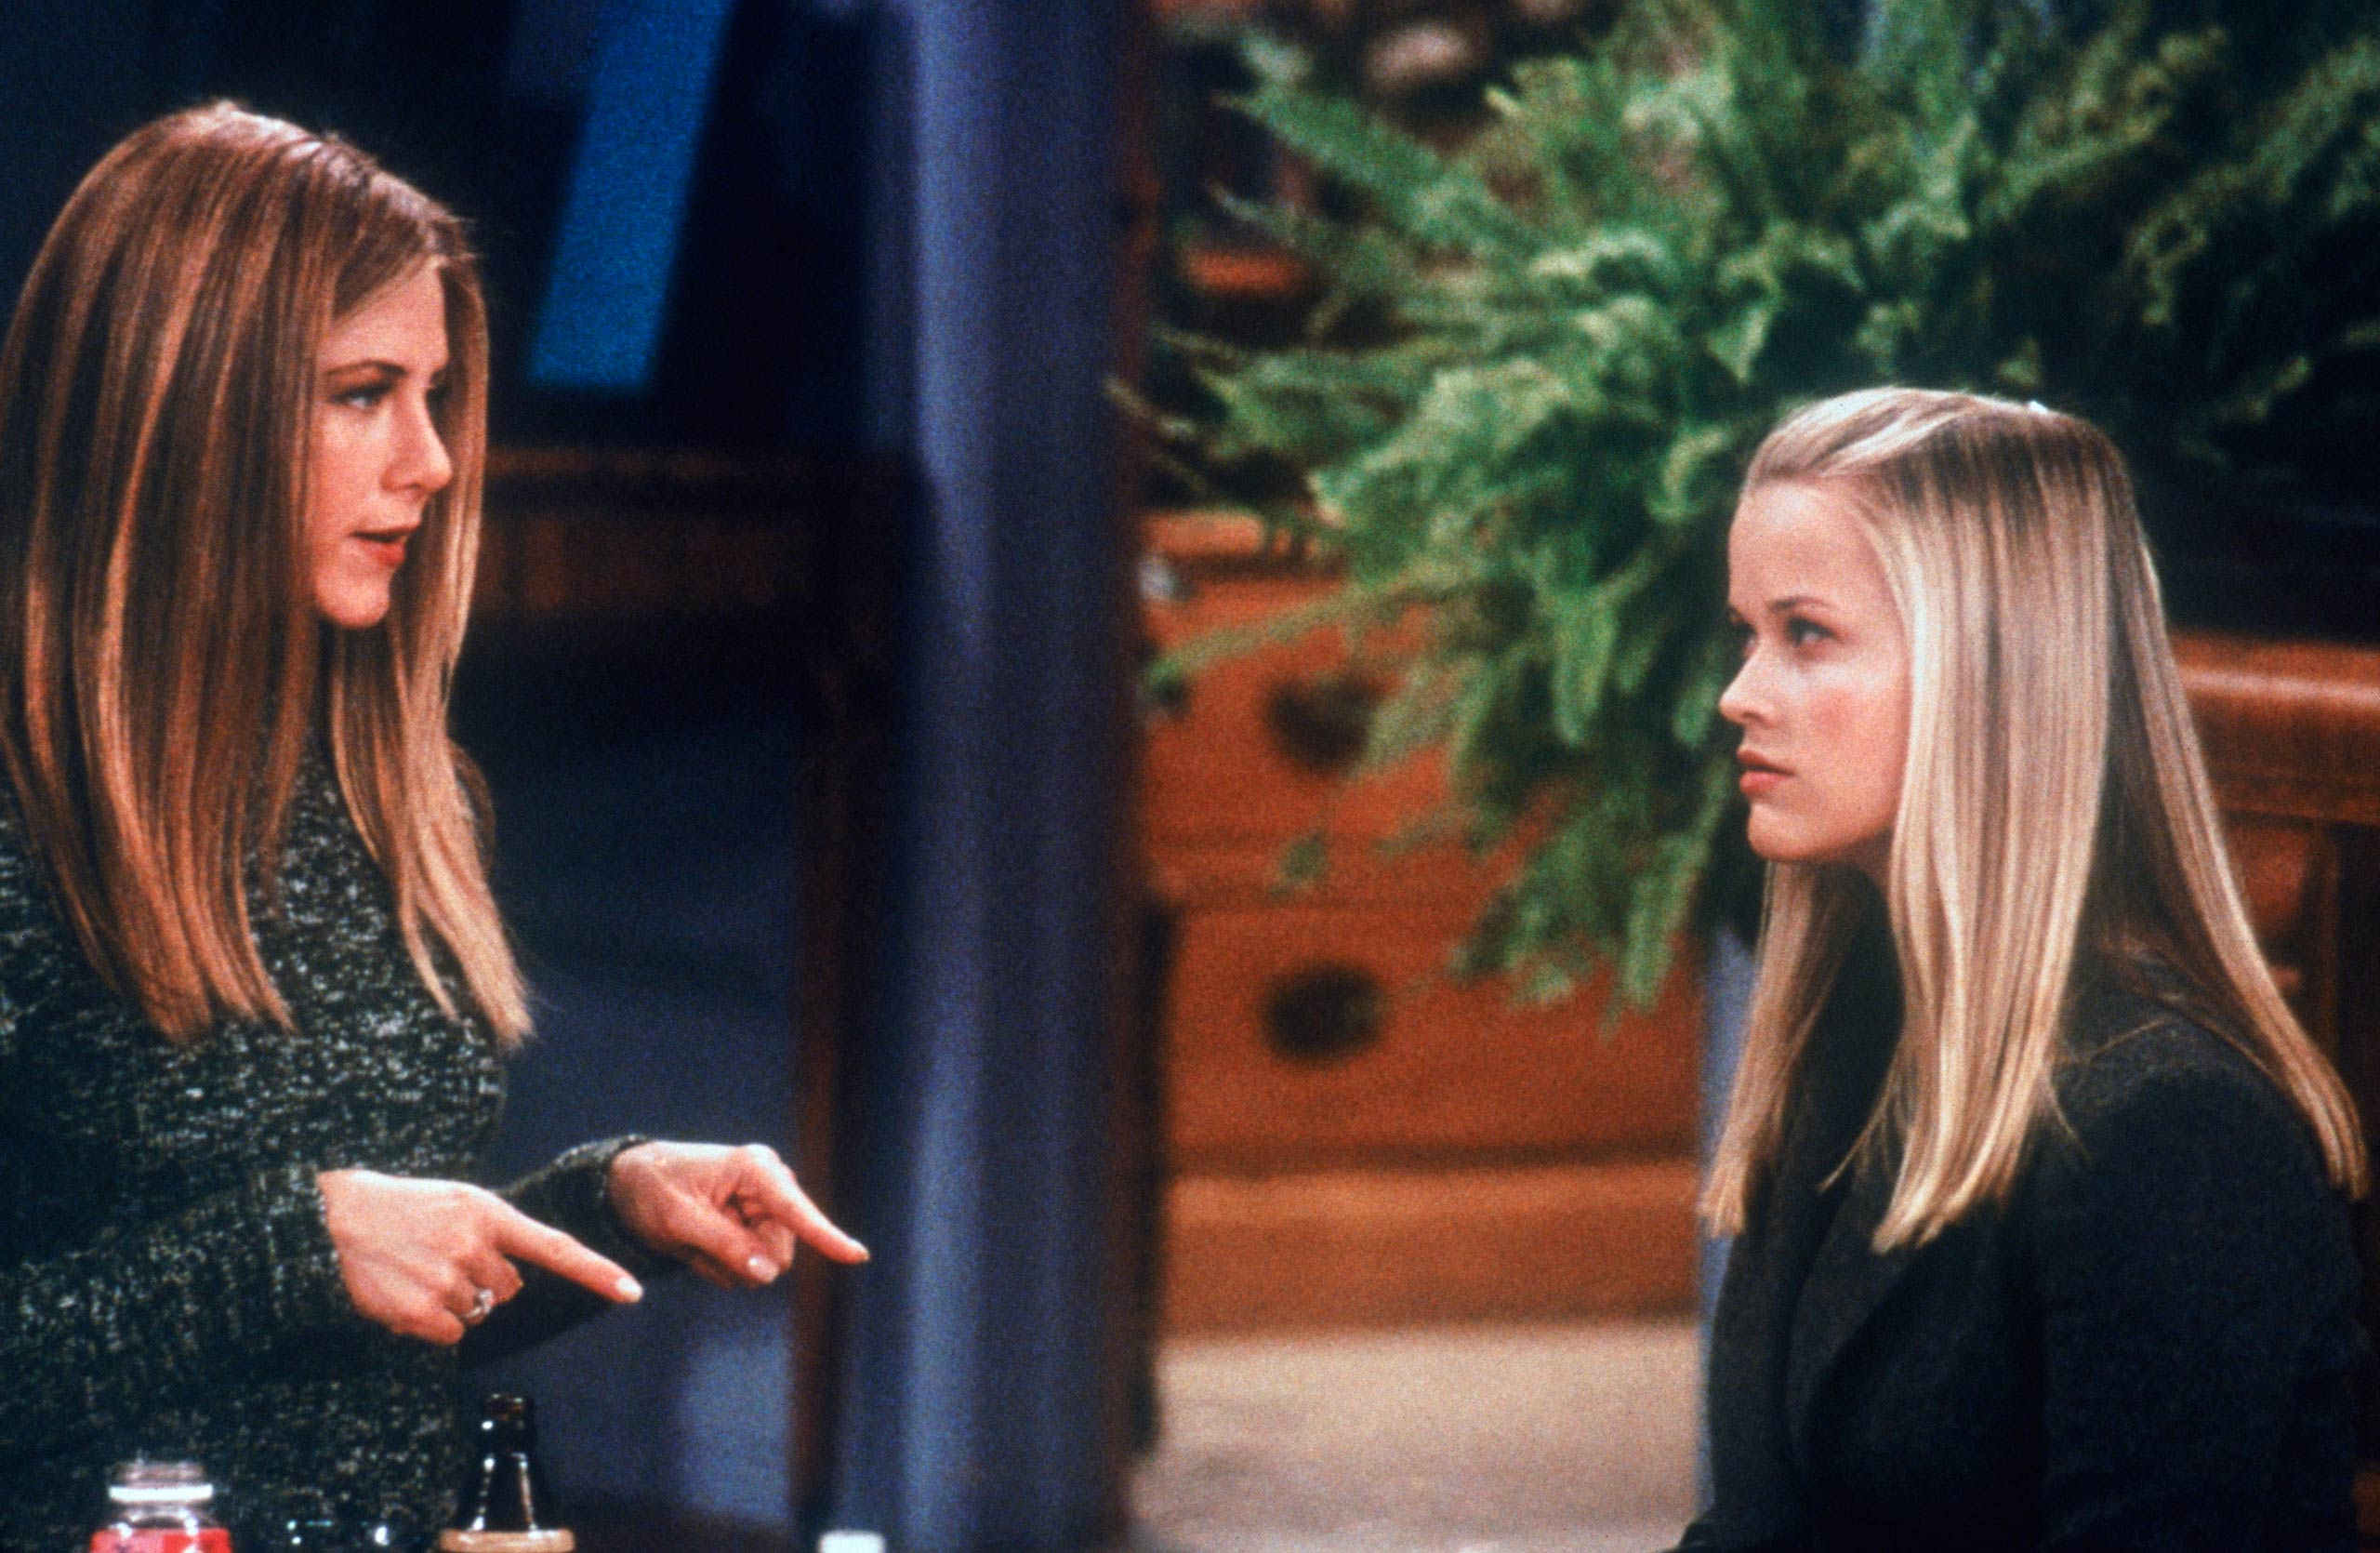 <strong>Reese Witherspoon</strong> – Reese Witherspoon guest-stars as Rachel's younger sister who goes on a date with Ross